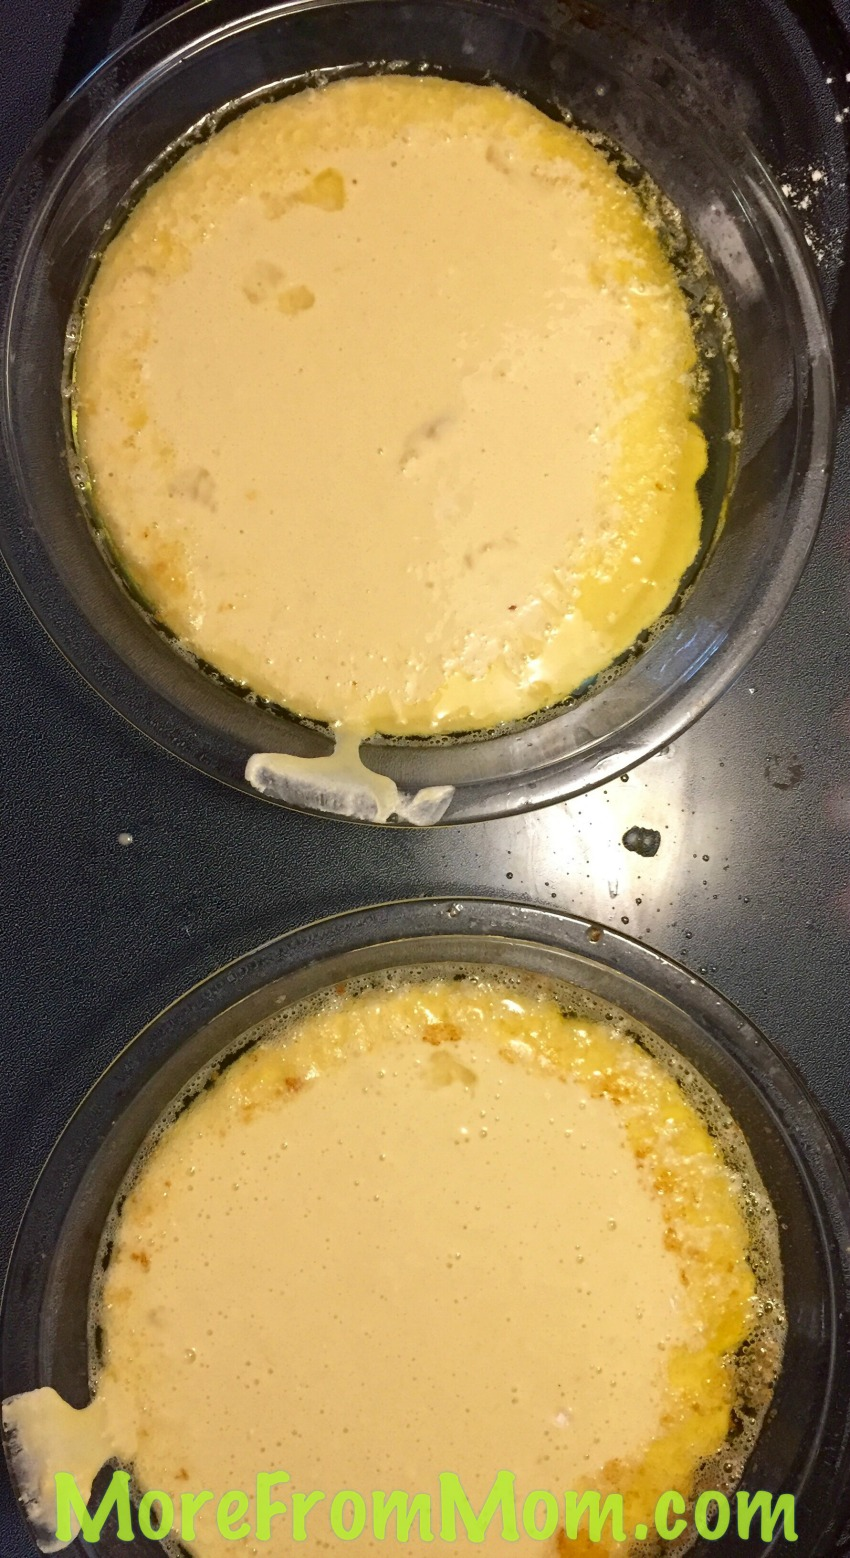 Poured into the butter